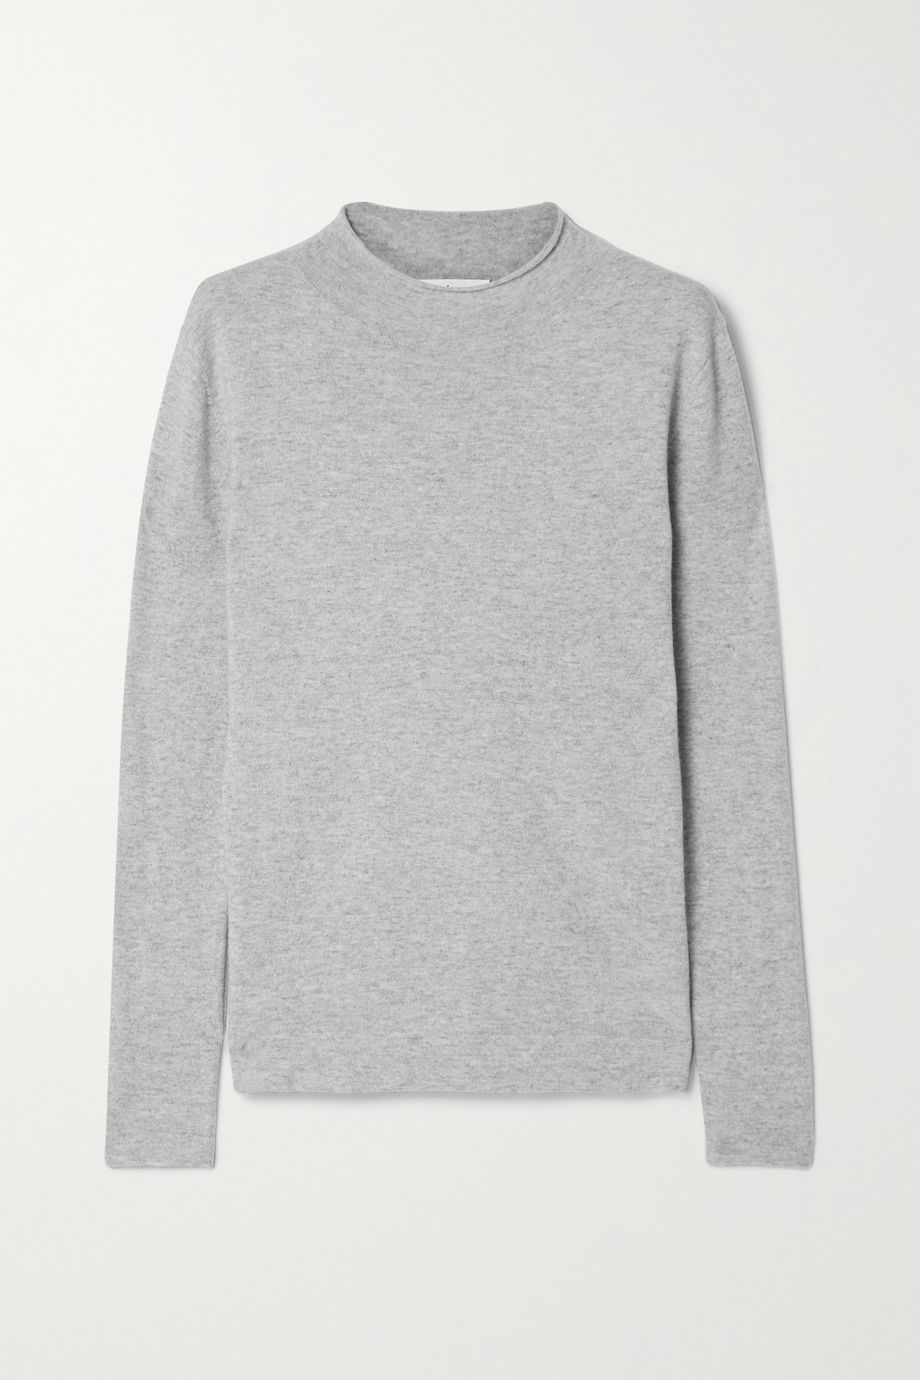 Arch4 Devon cashmere sweater